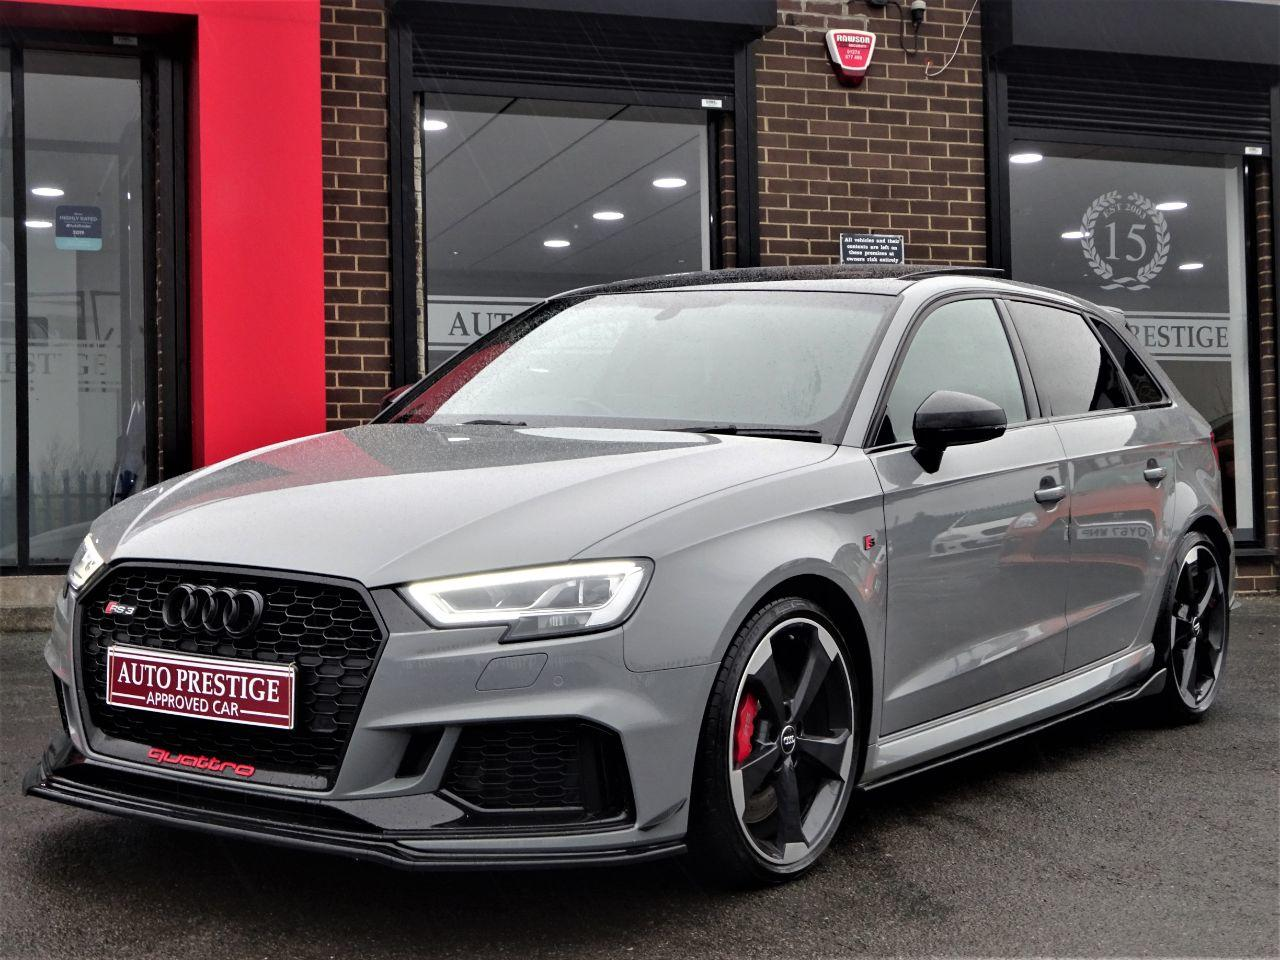 Audi RS3 2.5 Quattro 5dr S Tronic NARDO GREY HUGH SPEC PAN ROOF RED STITCHED BUCKET LEATHER SPORTS EXHAUSTS Hatchback Petrol Grey at Autoprestige Bradford